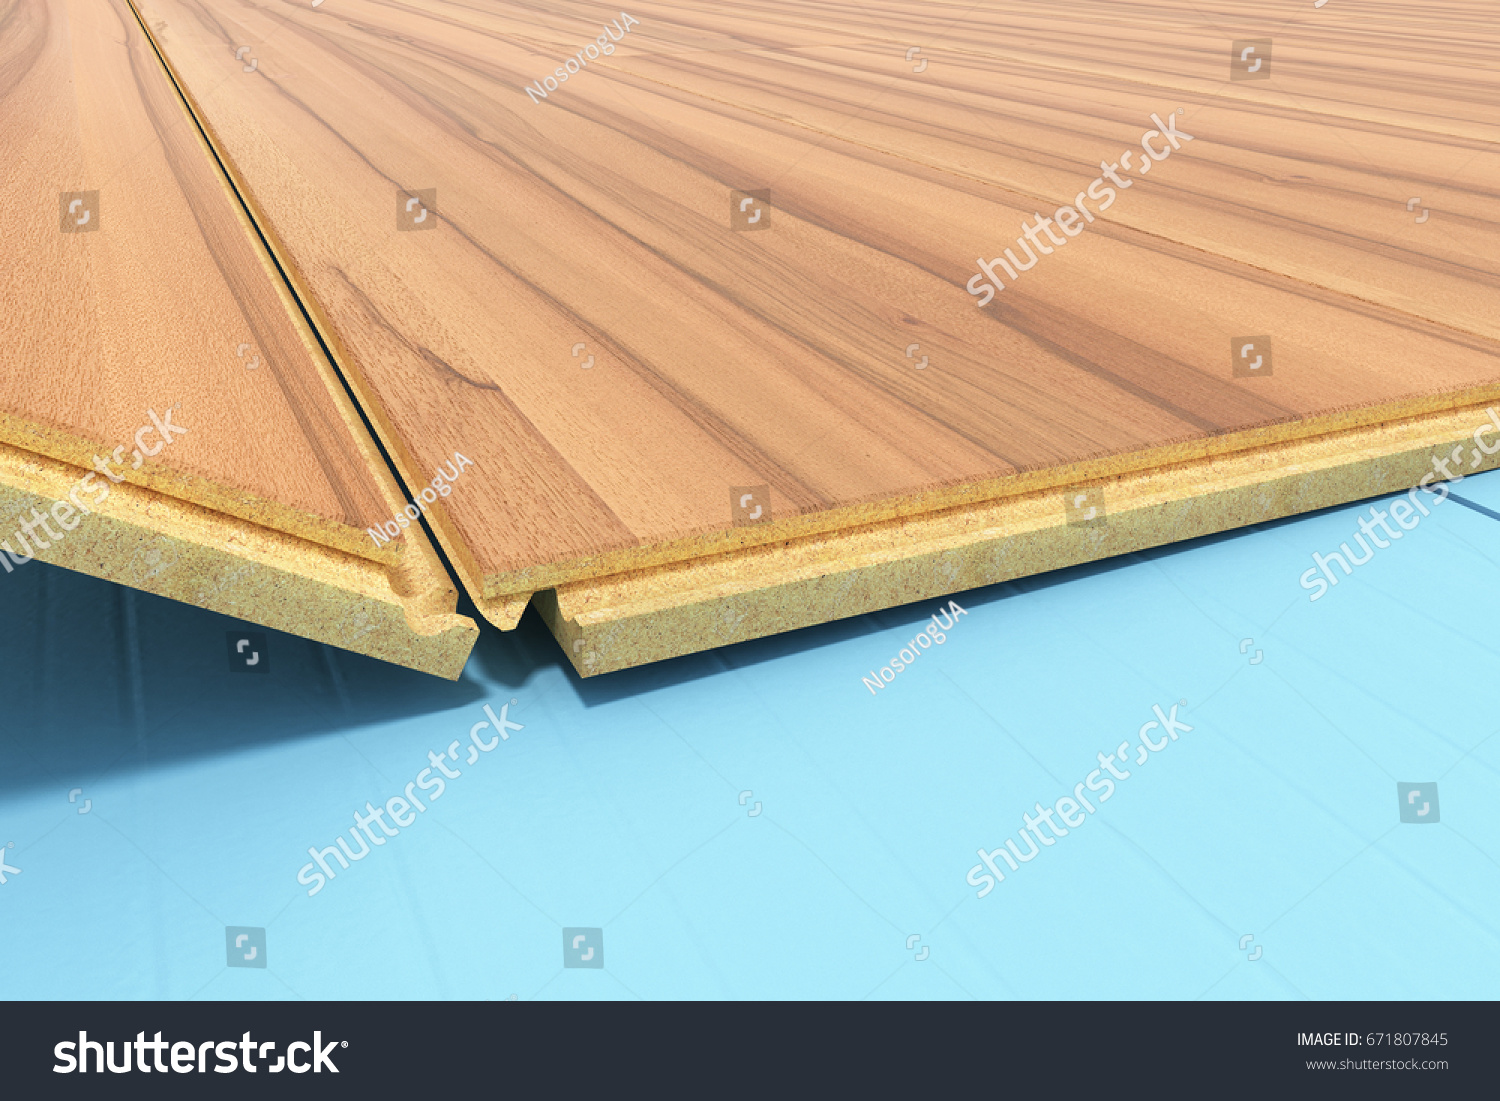 Installing Wooden Laminate Flooring With Insulation And Soundproofing  Sheets Laying Laminate Flooring Step By Step 3d